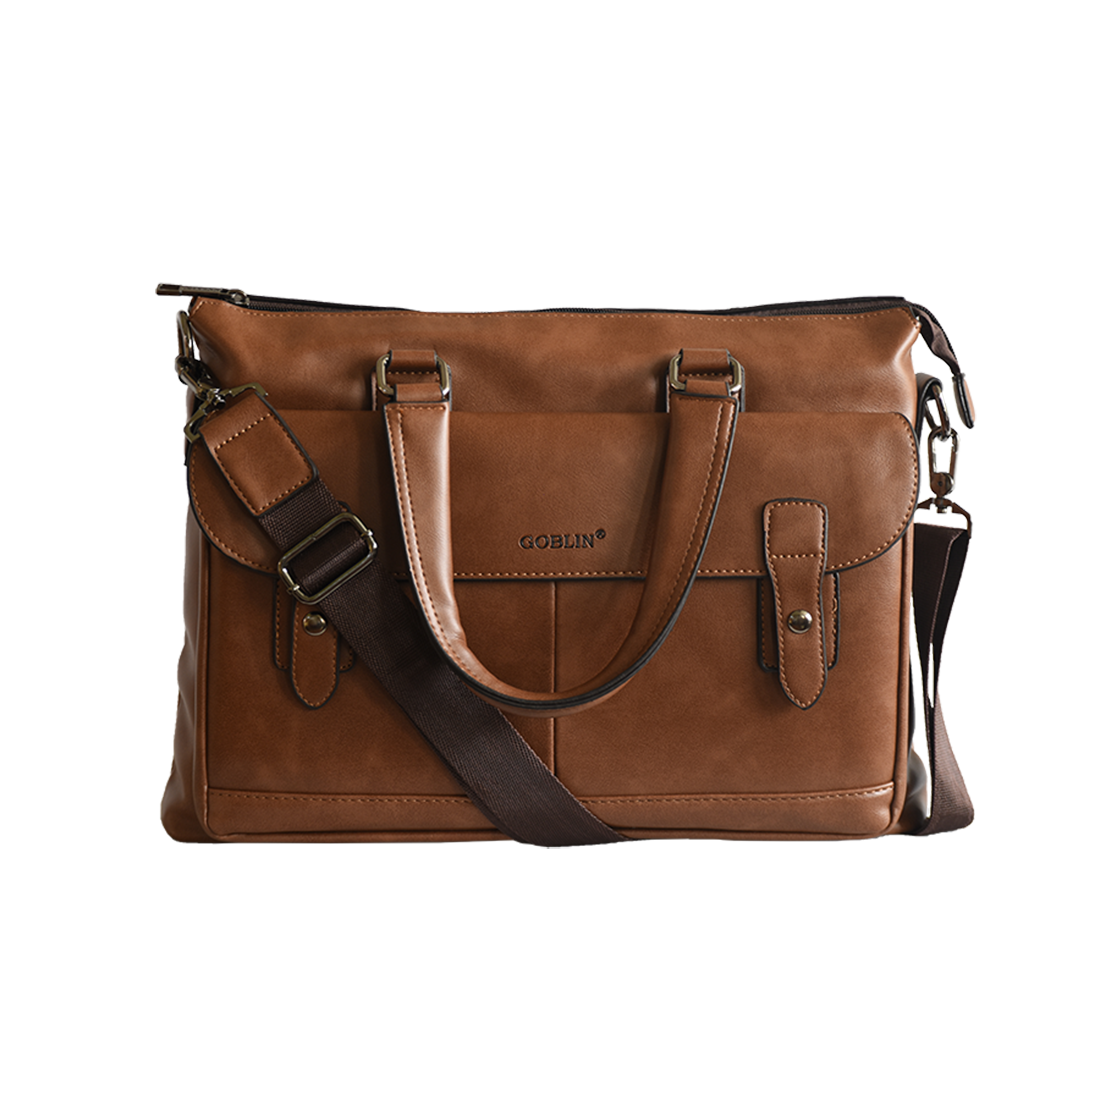 Plutus Goblin Brown Pu Leather Office Bag